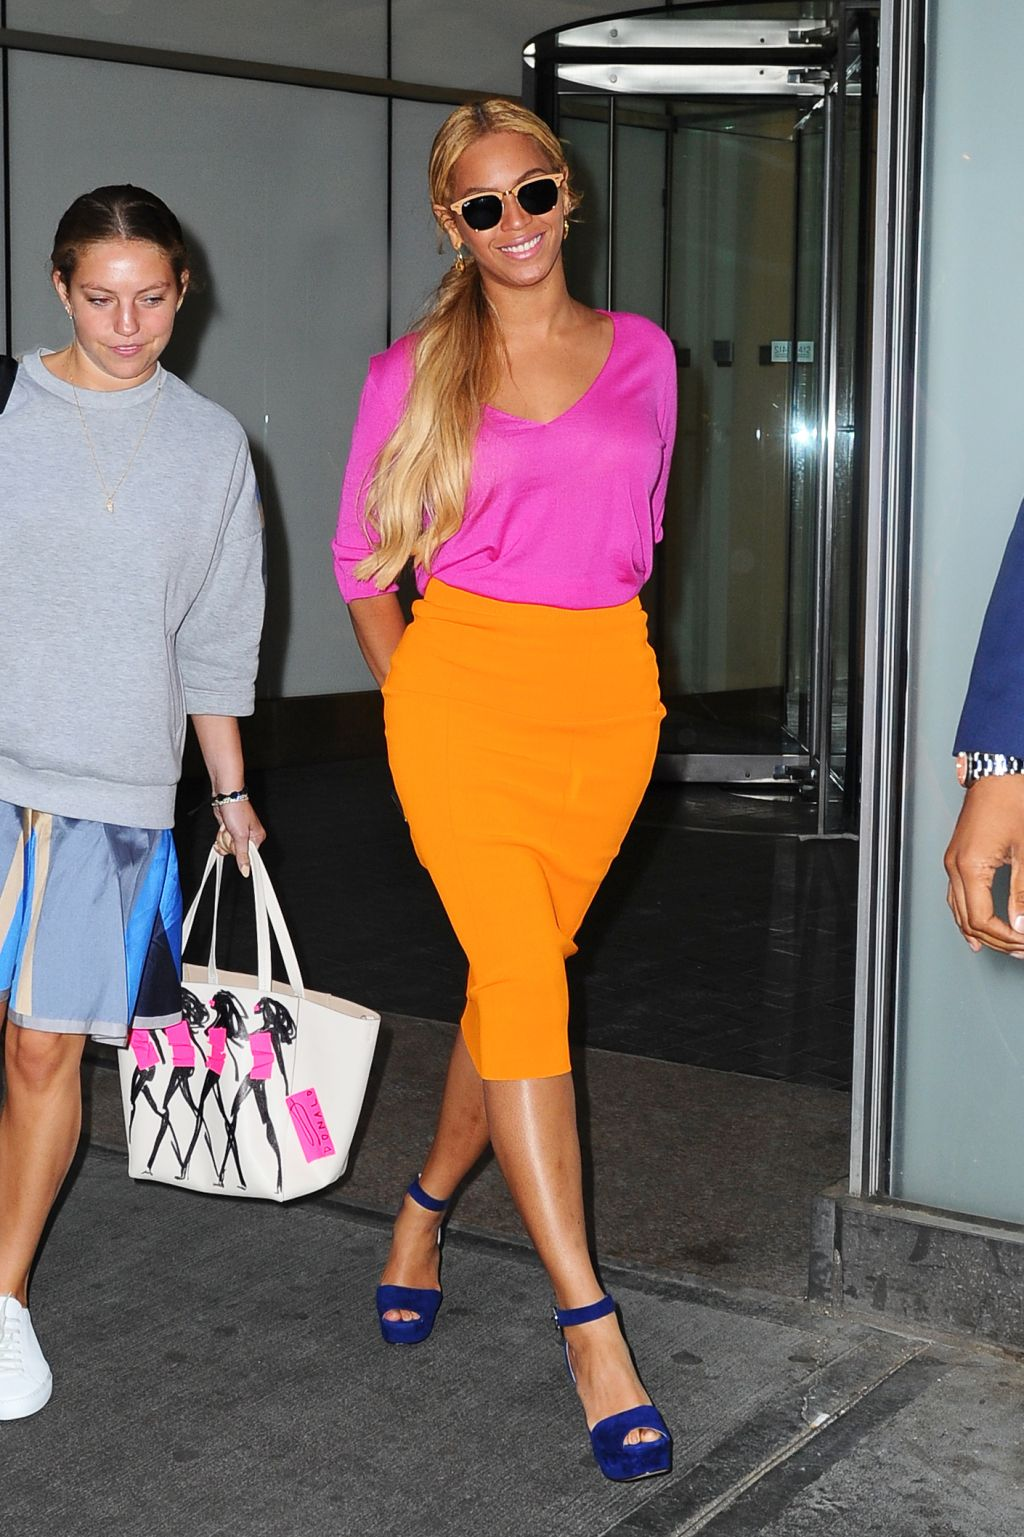 Beyonce rocking orange skirt and pink shirt in New York | Red ...